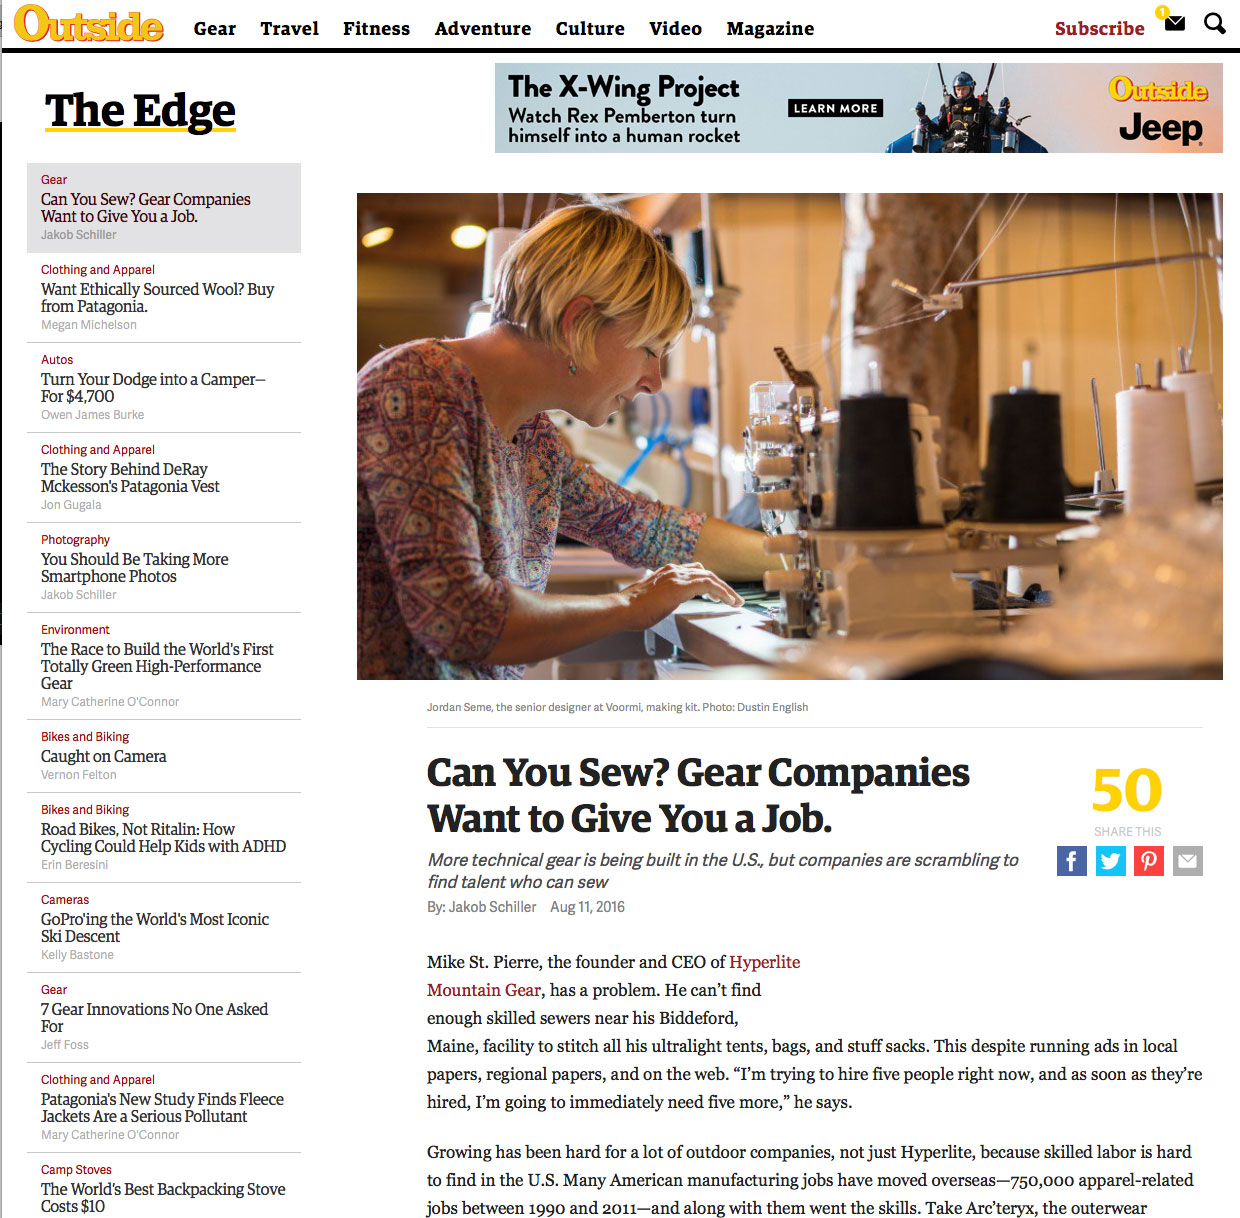 Can You Sew? Gear Companies Want to Give You a Job.